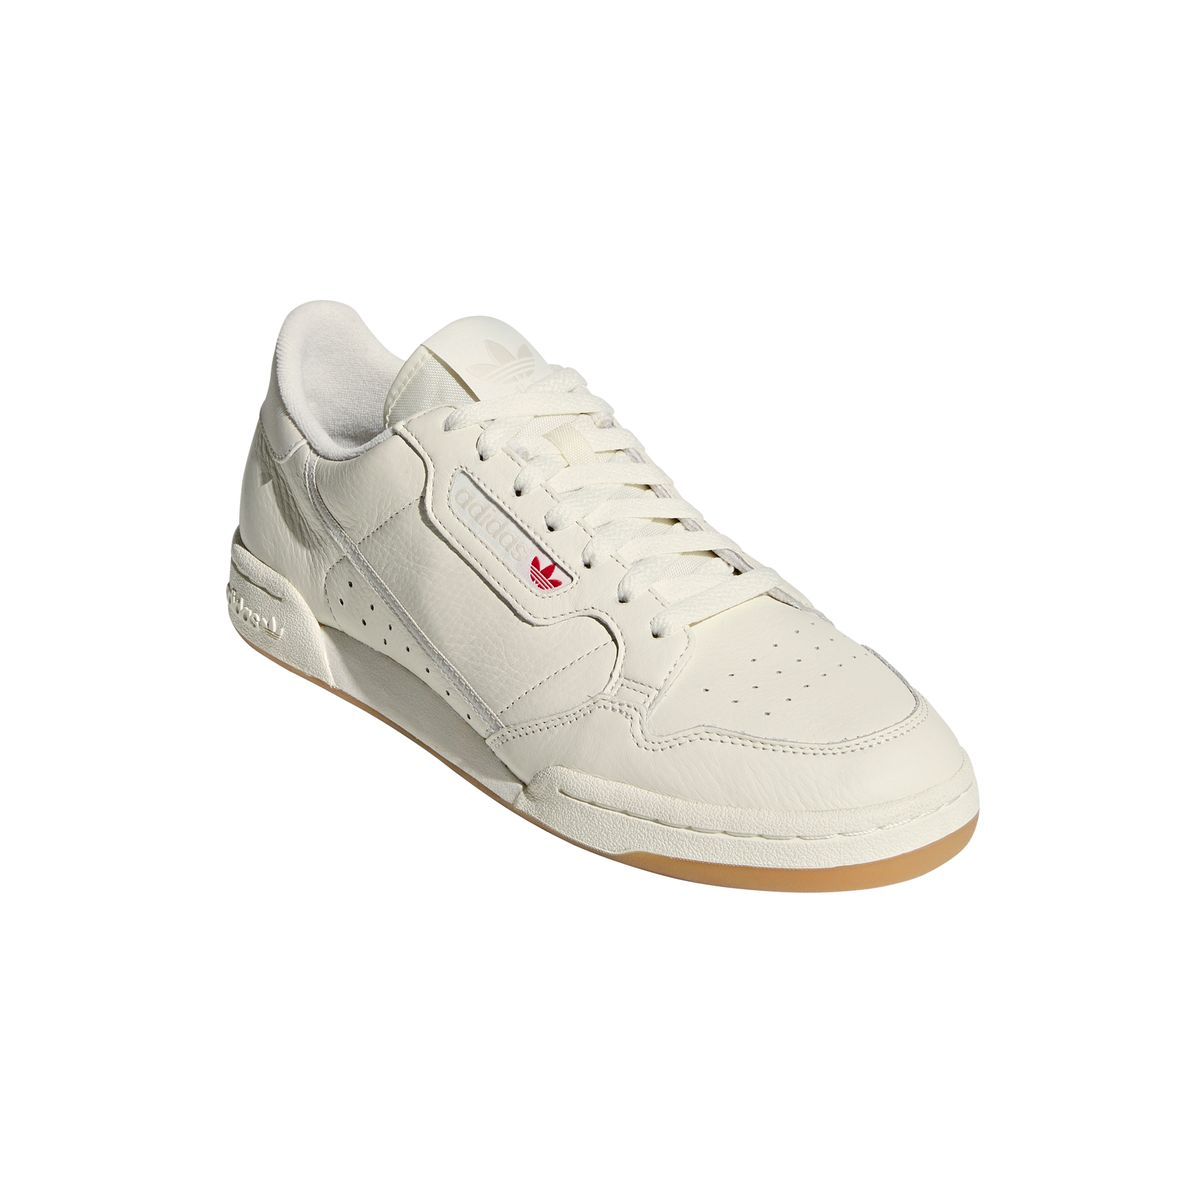 Chaussures CONTINENTAL 80 | Baskets adidas, Baskets et Chaussure